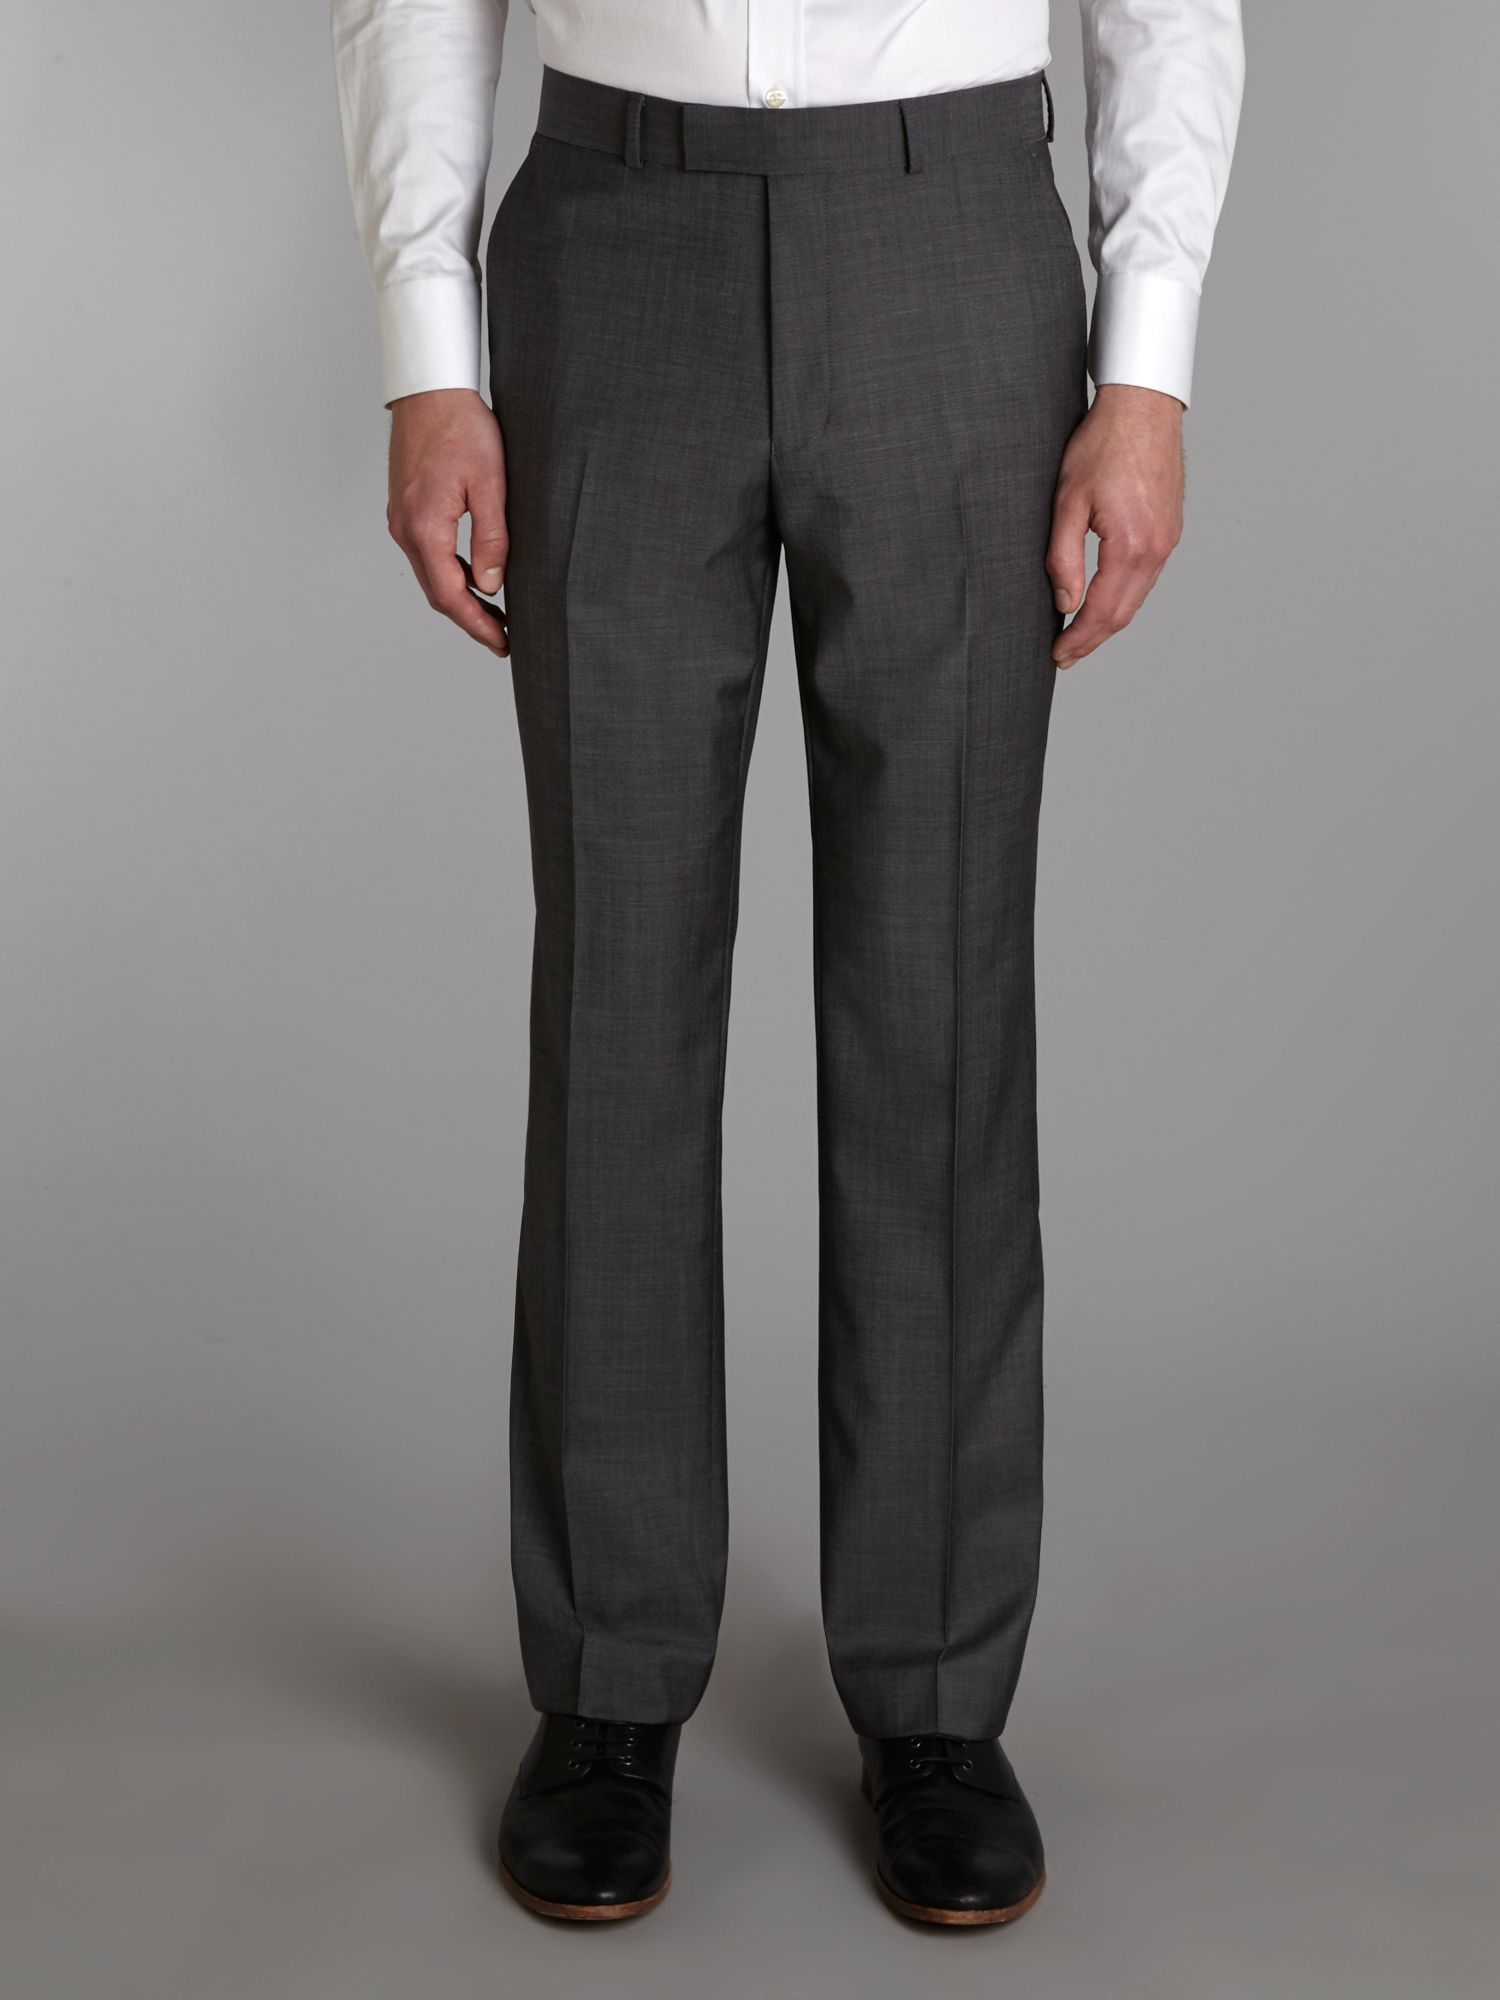 Golden ewe regular fit trousers